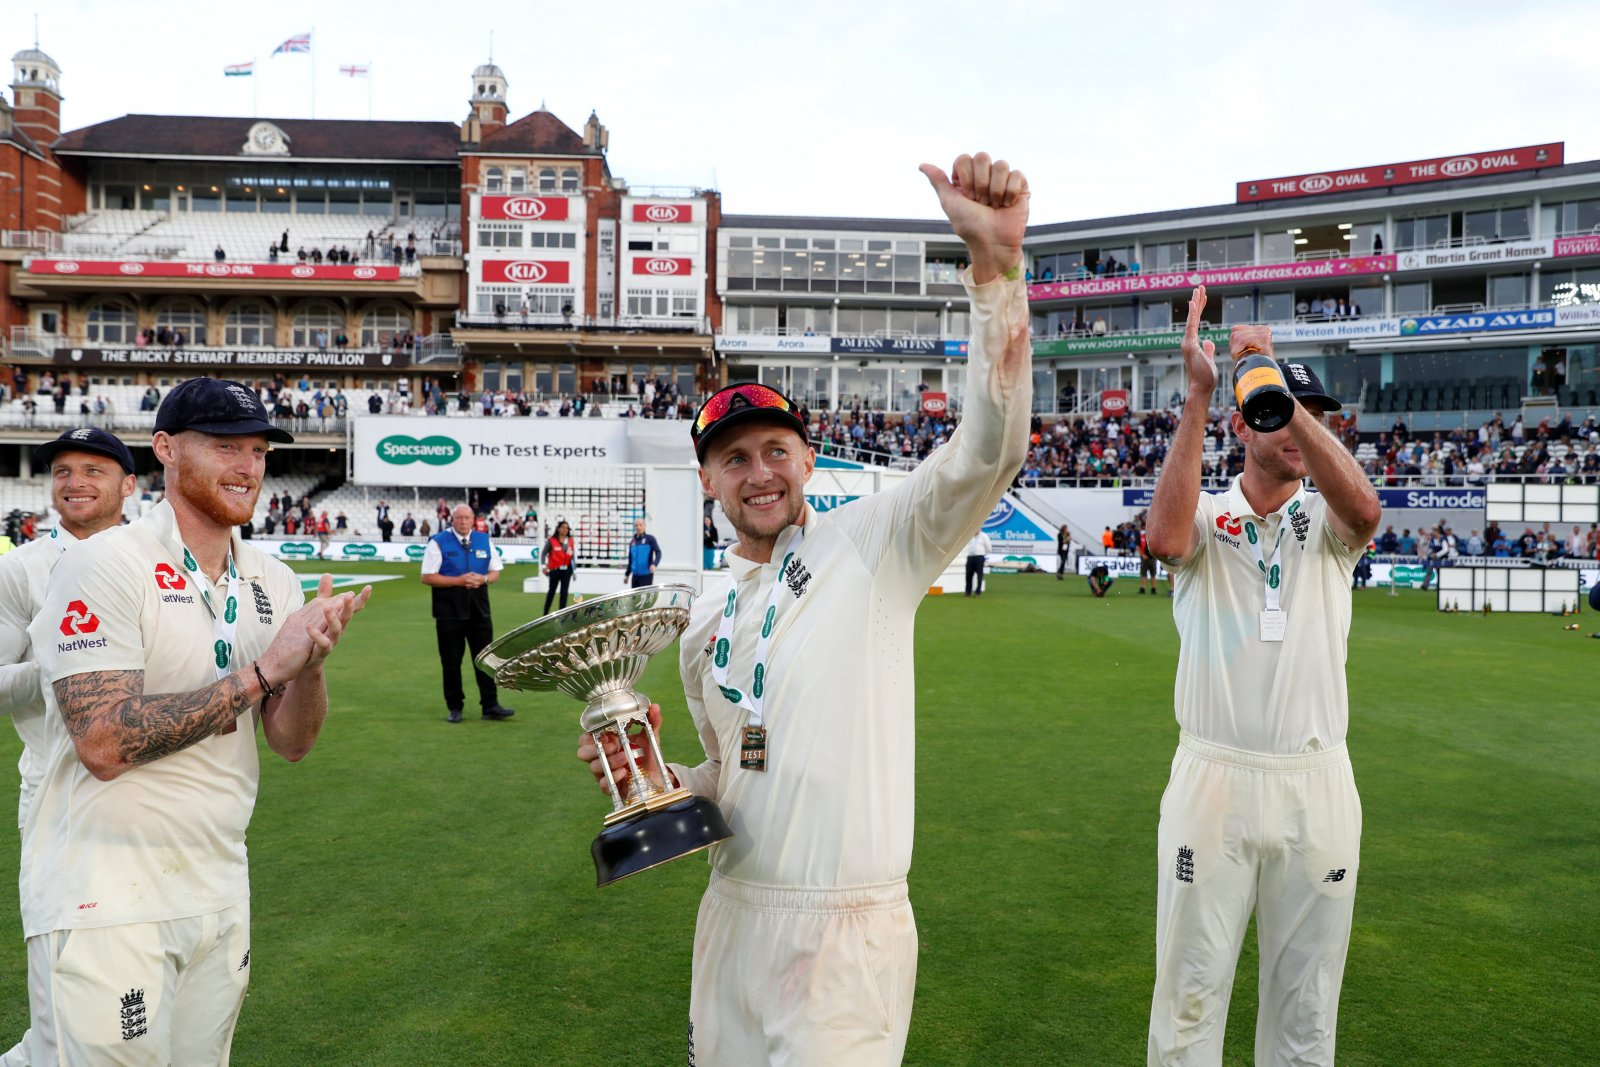 England cricket team celebrate at the Oval